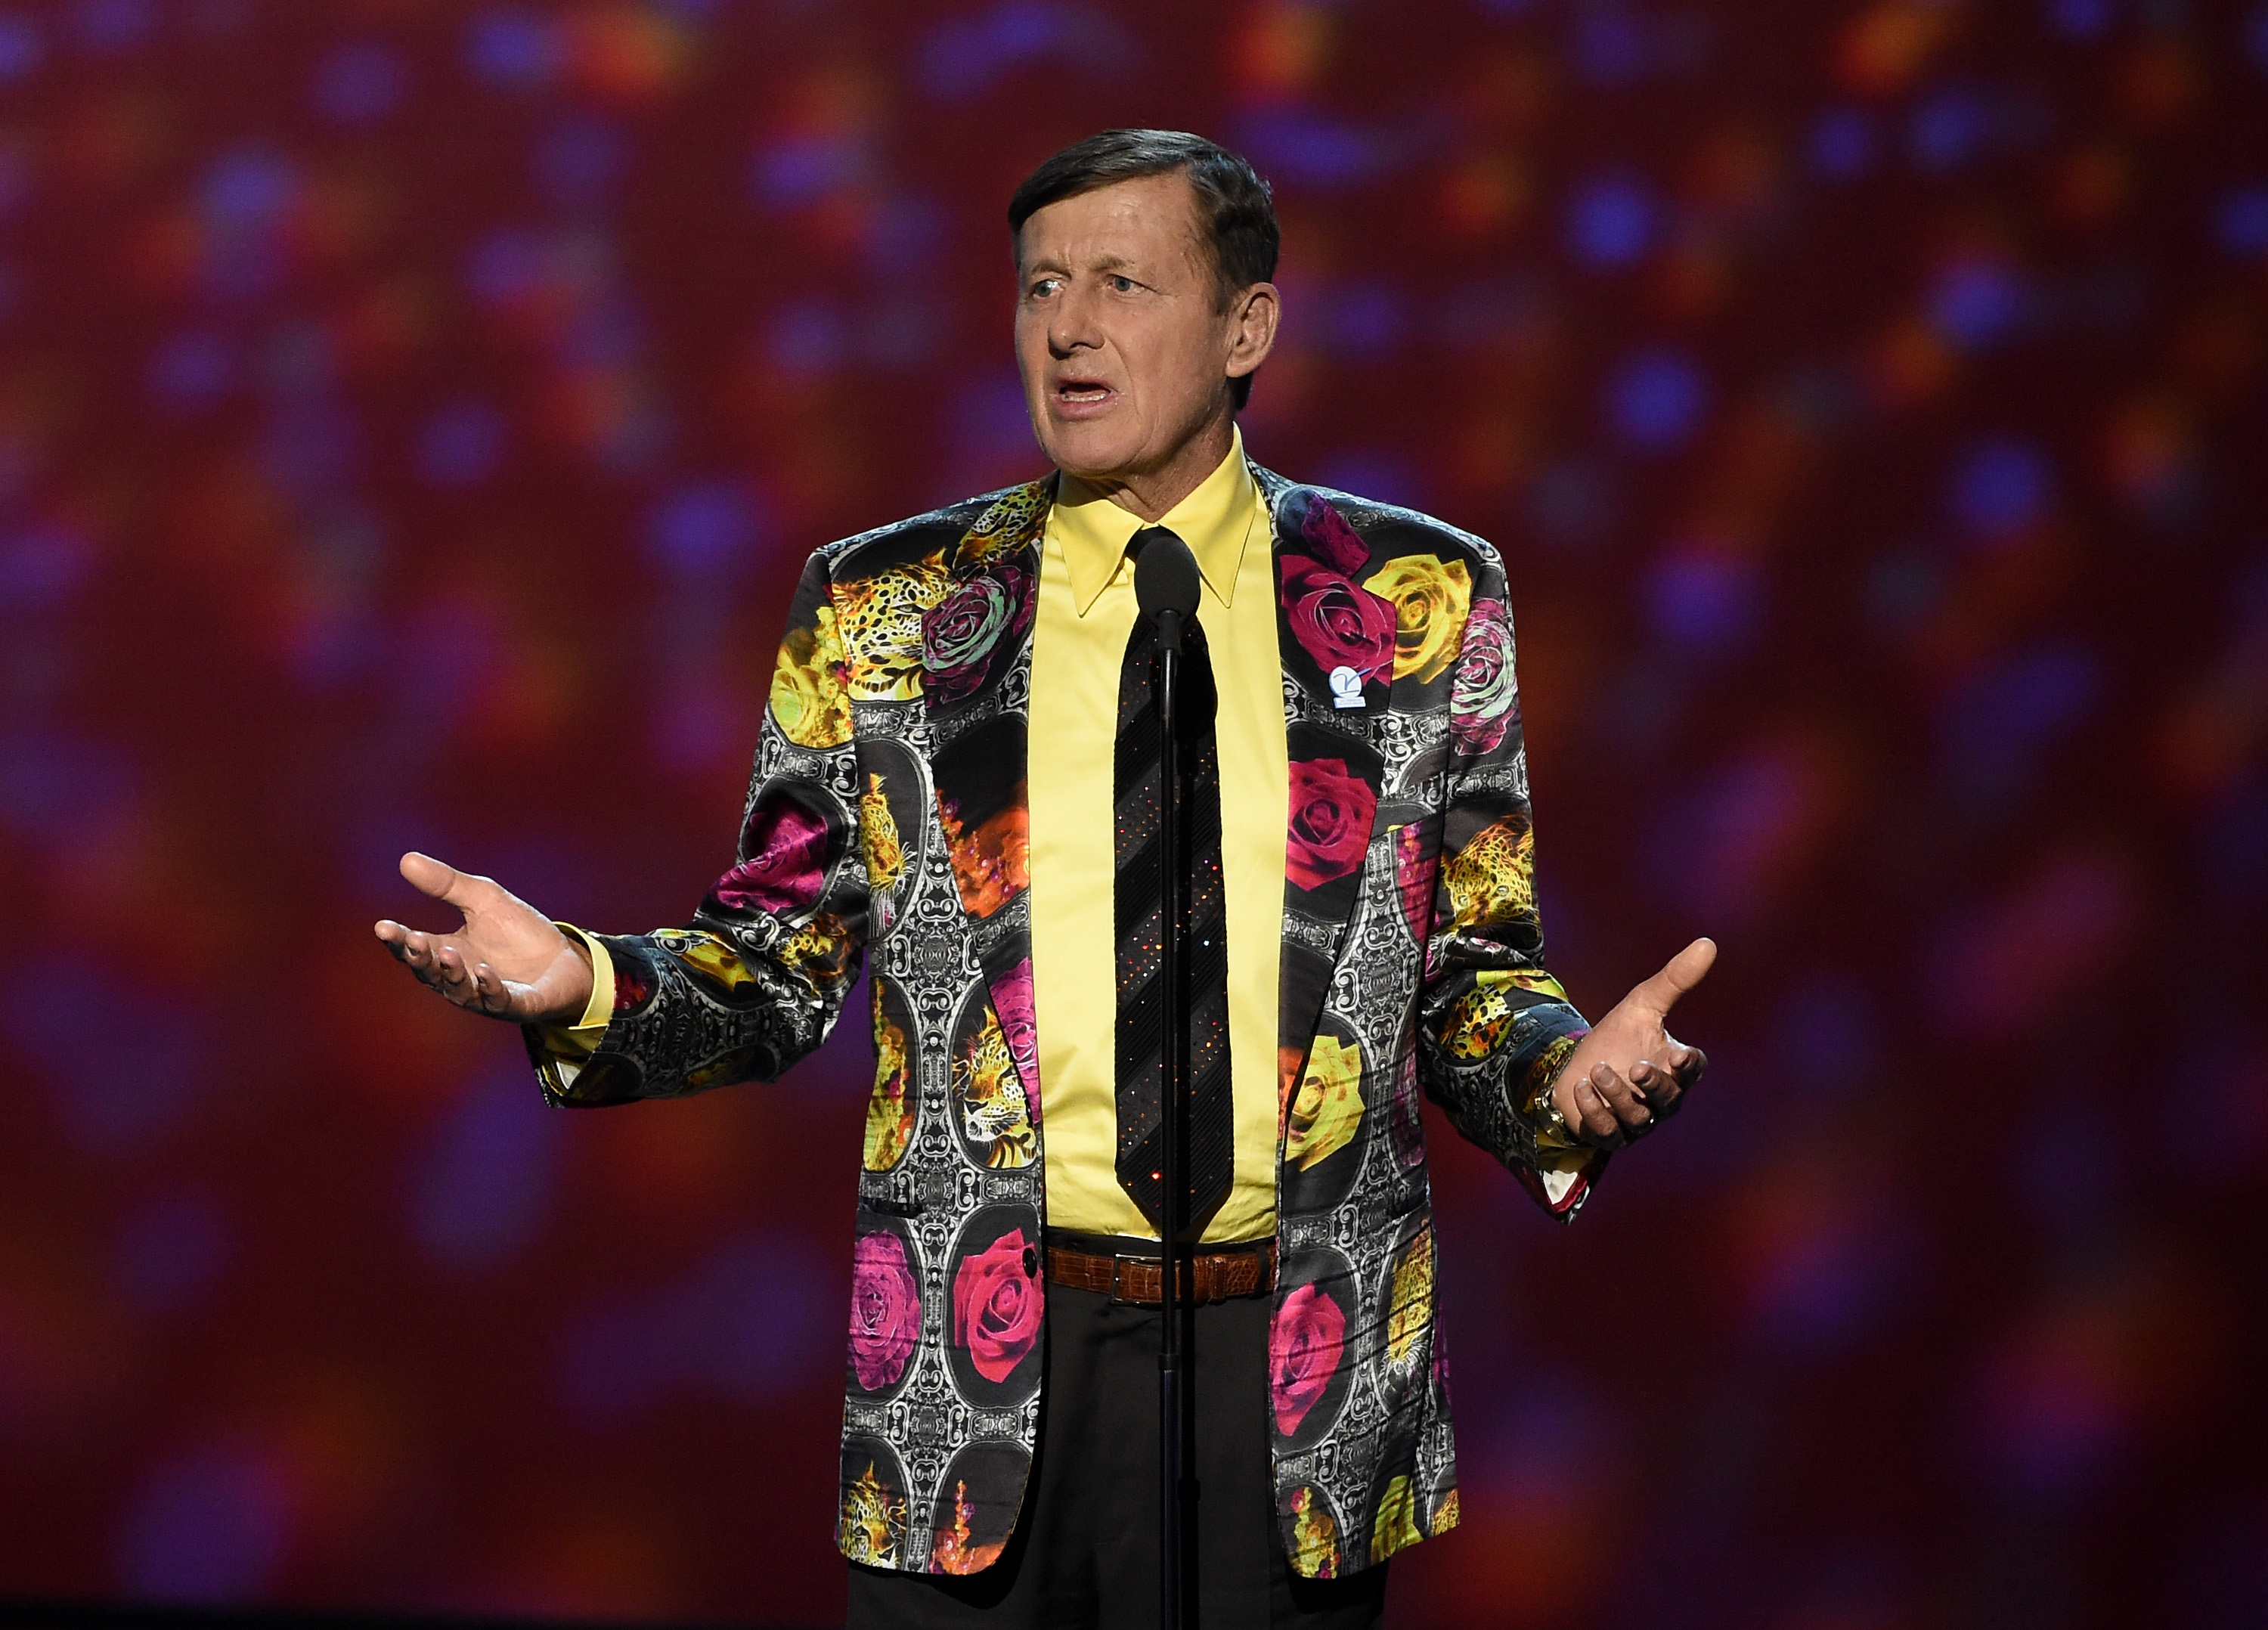 Kevin Garnett Once Told the Late Craig Sager to Go Home and Burn All His Clothes